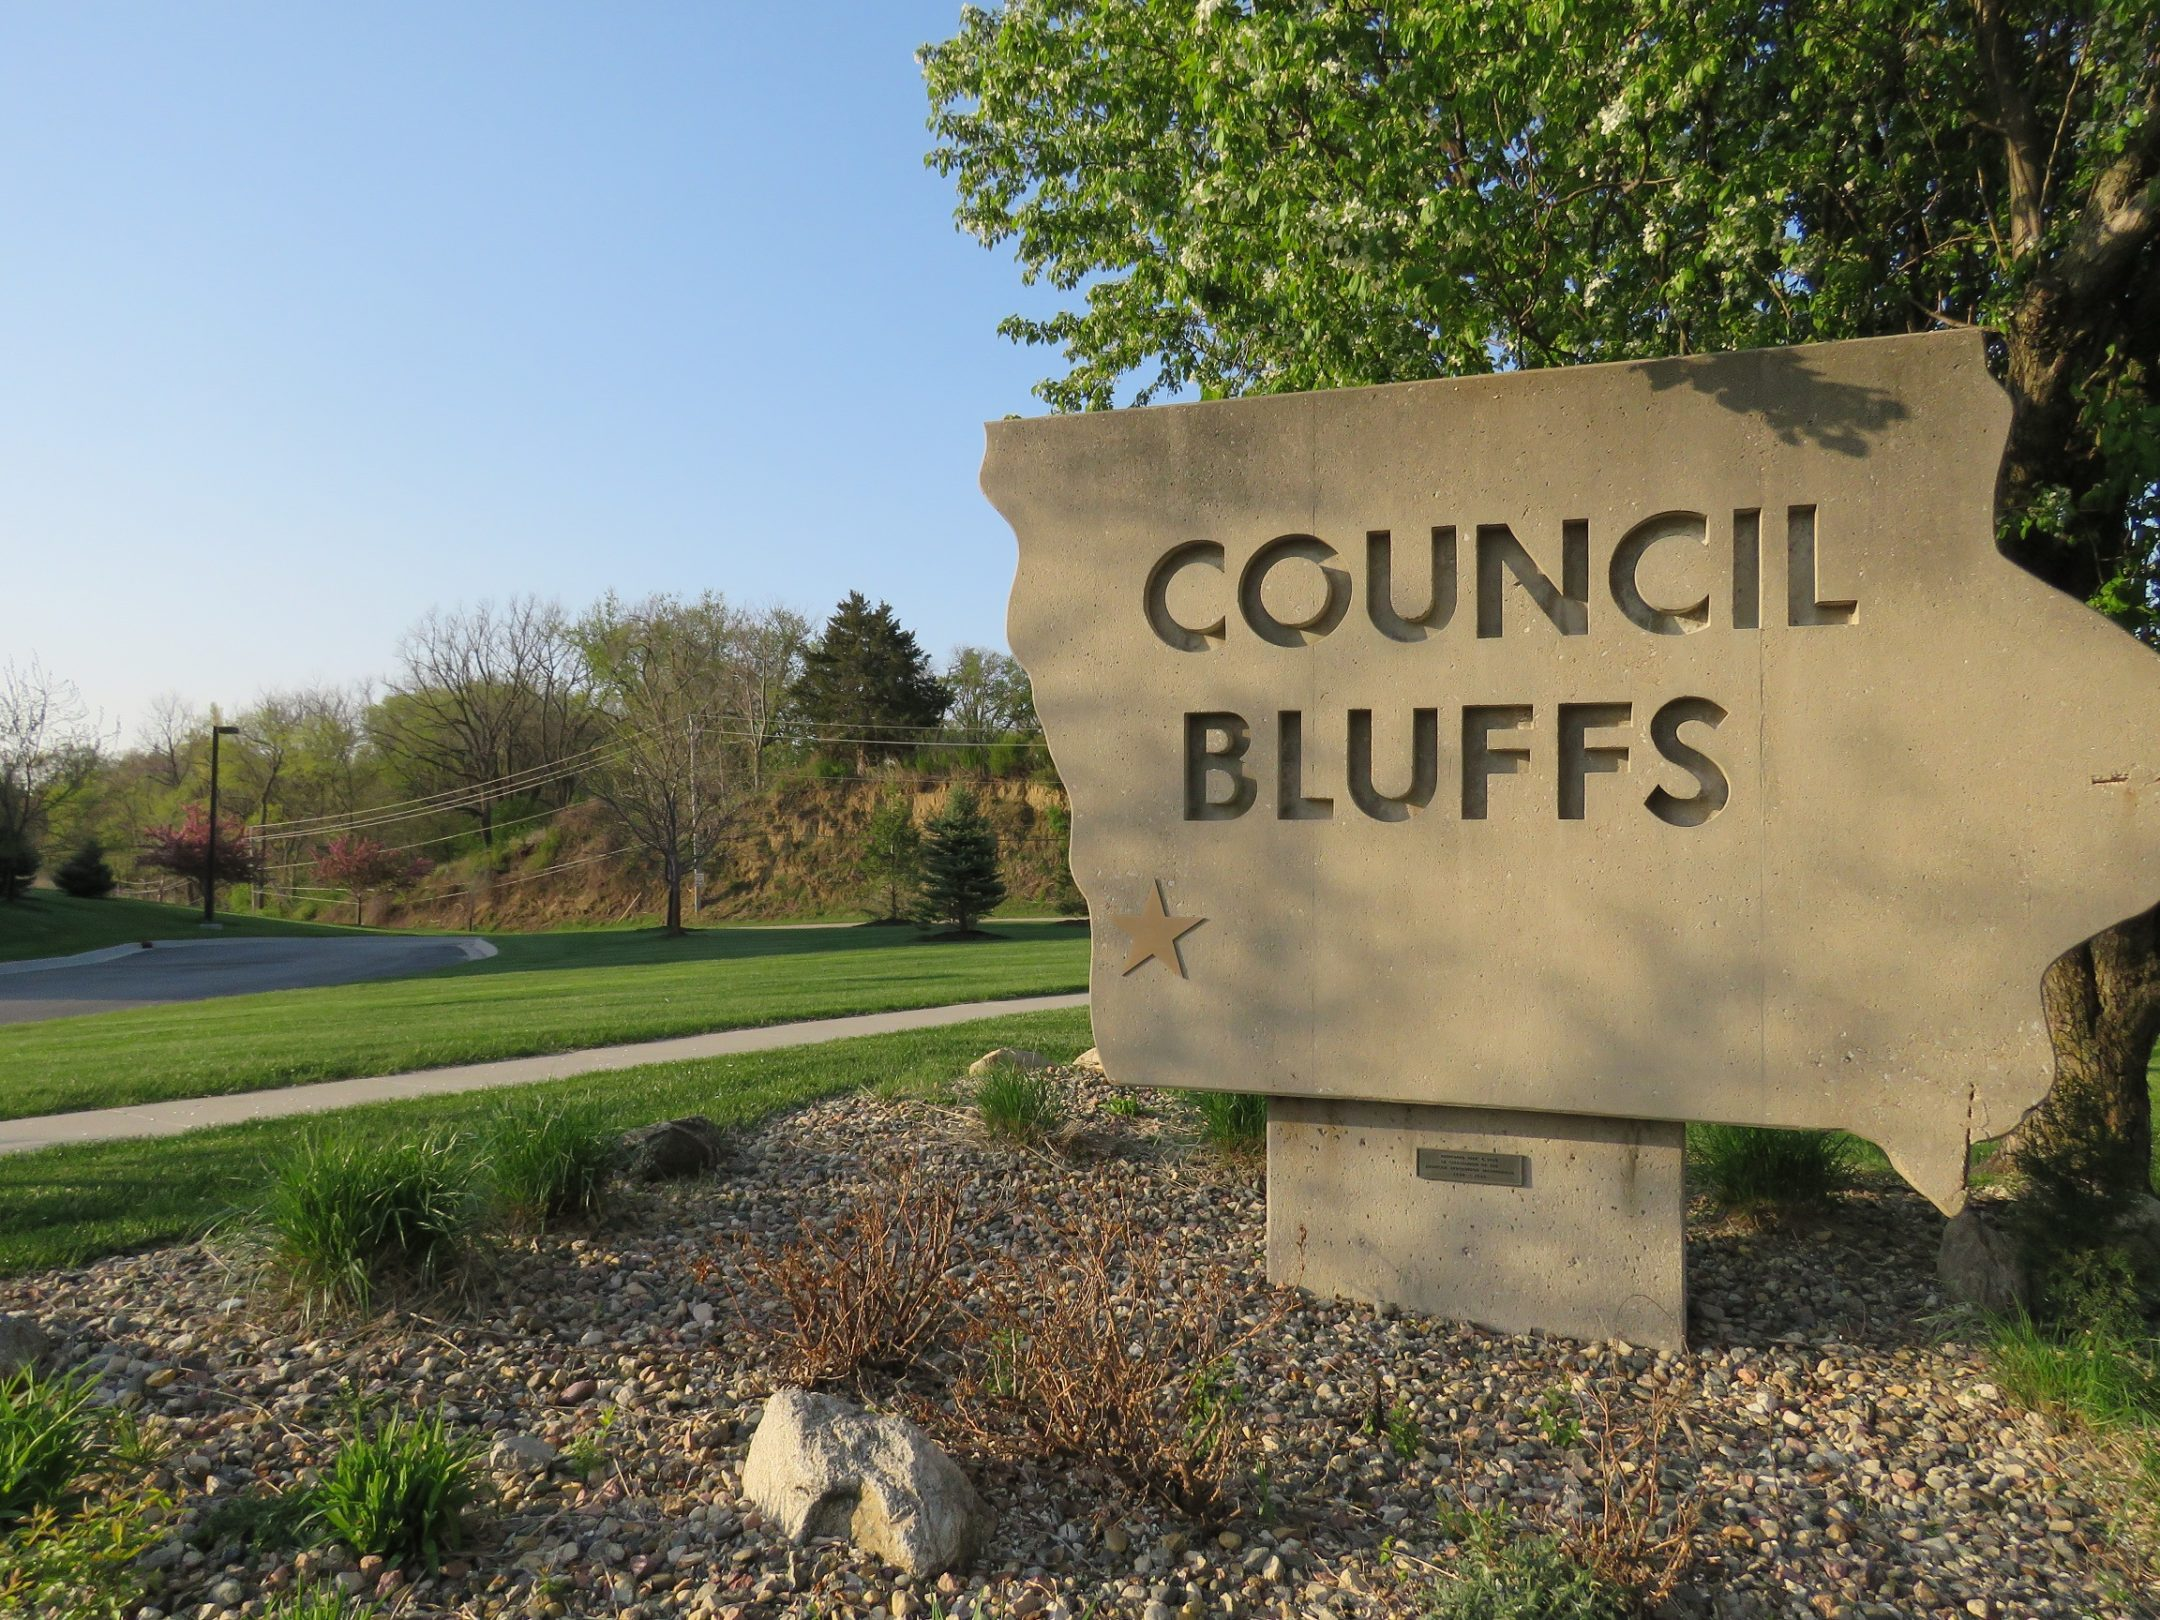 City of Council Bluffs sign